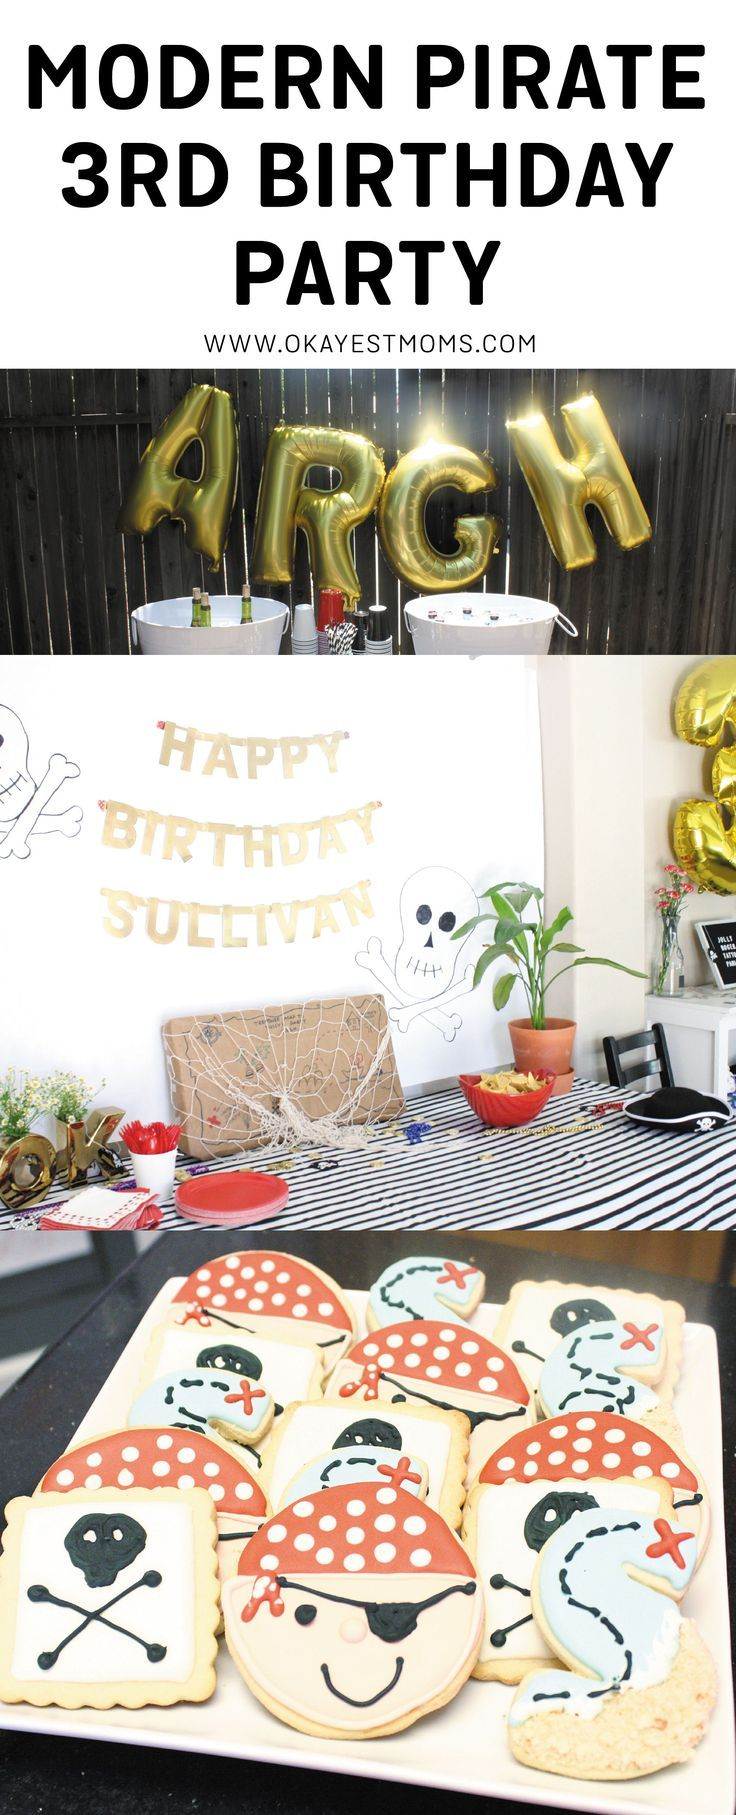 A Modern Pirate Third Birthday Party